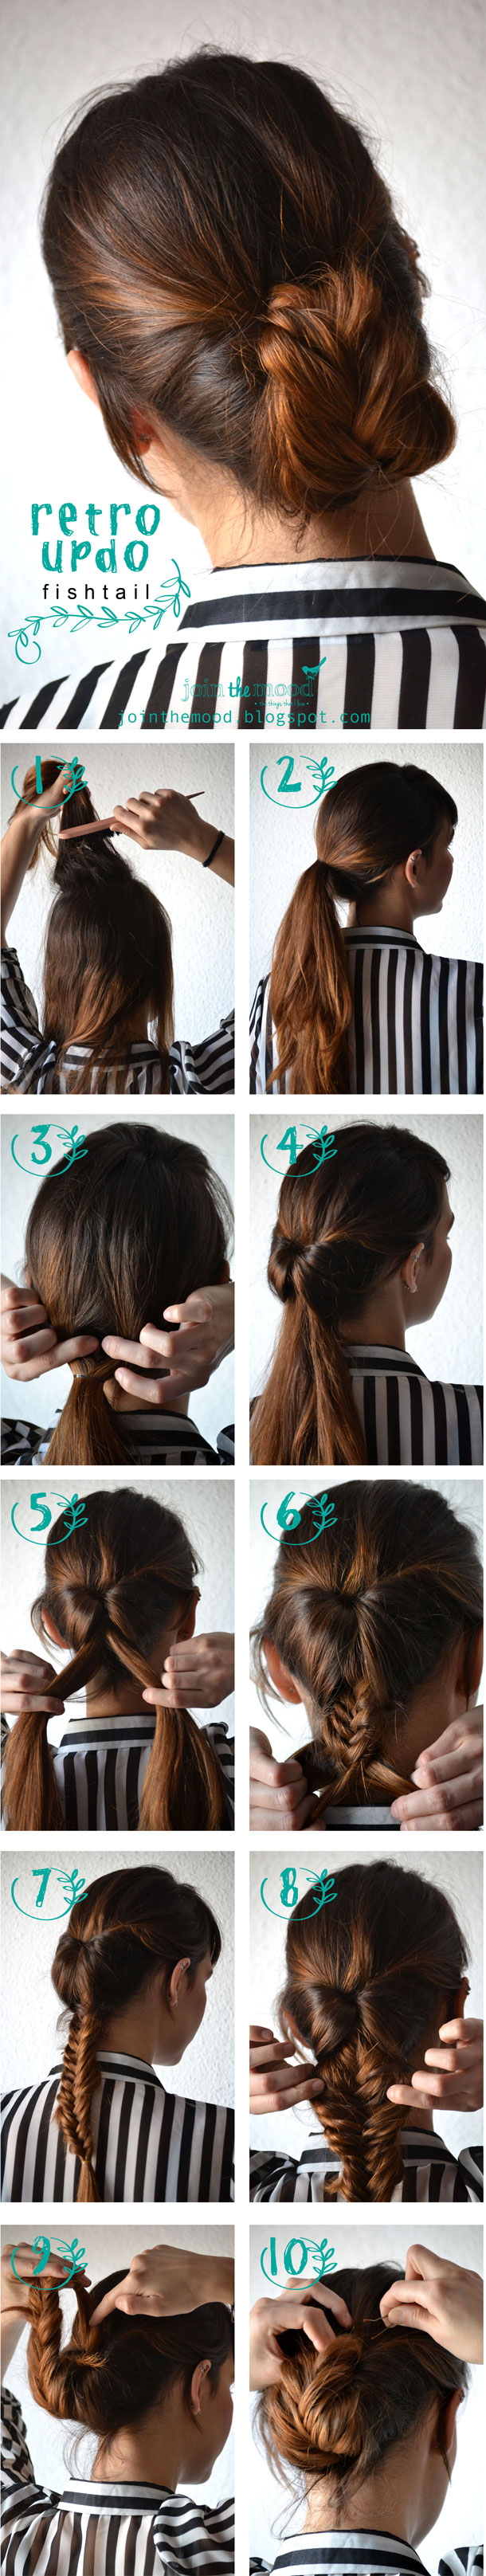 Create a cool retro updo fishtail braid.